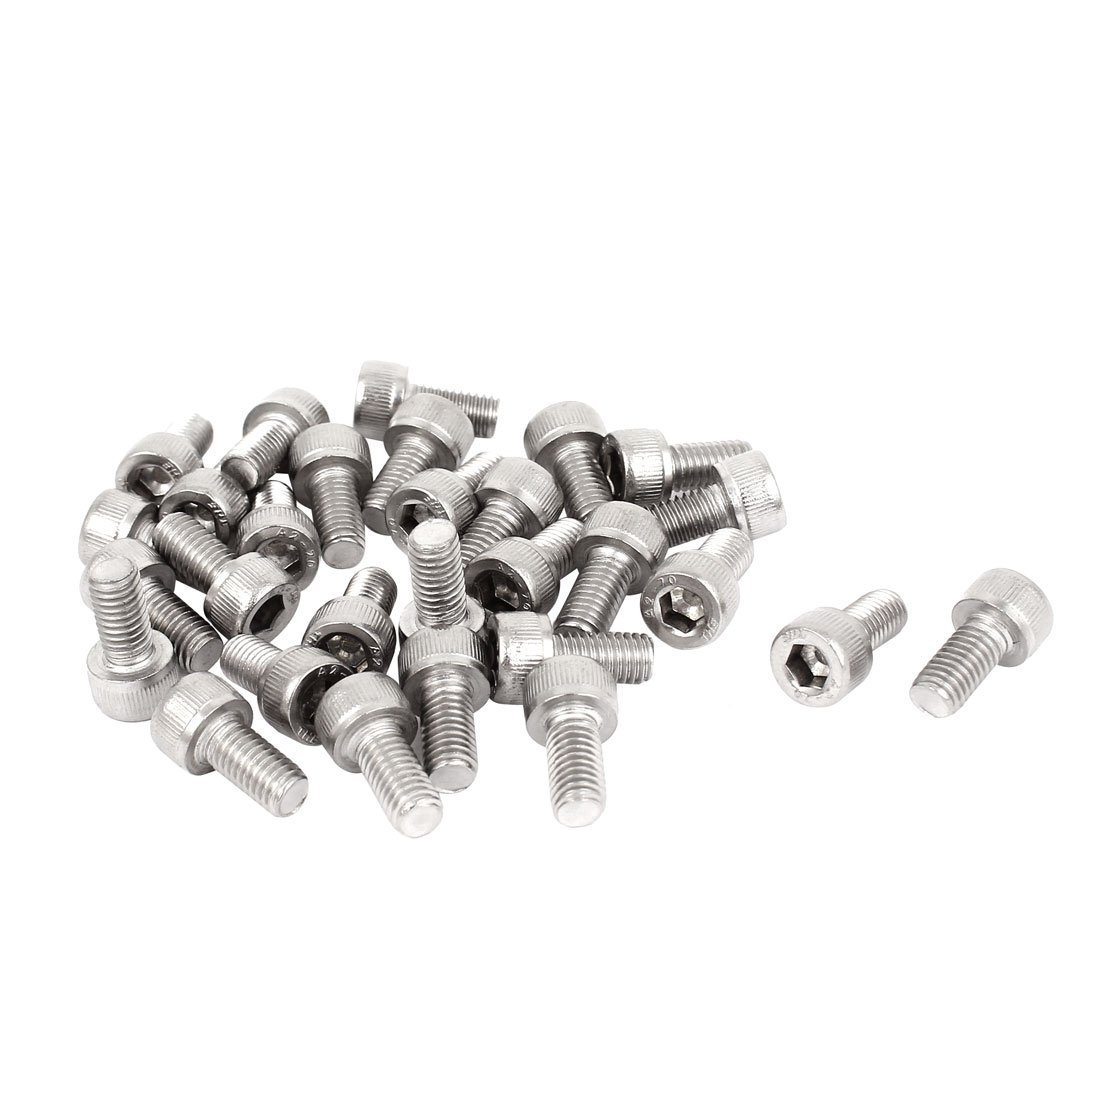 uxcell 0.8mm Pitch M5x10mm Stainless Steel Hex Socket Head Cap Screws 30 Pcs a15040700ux0238